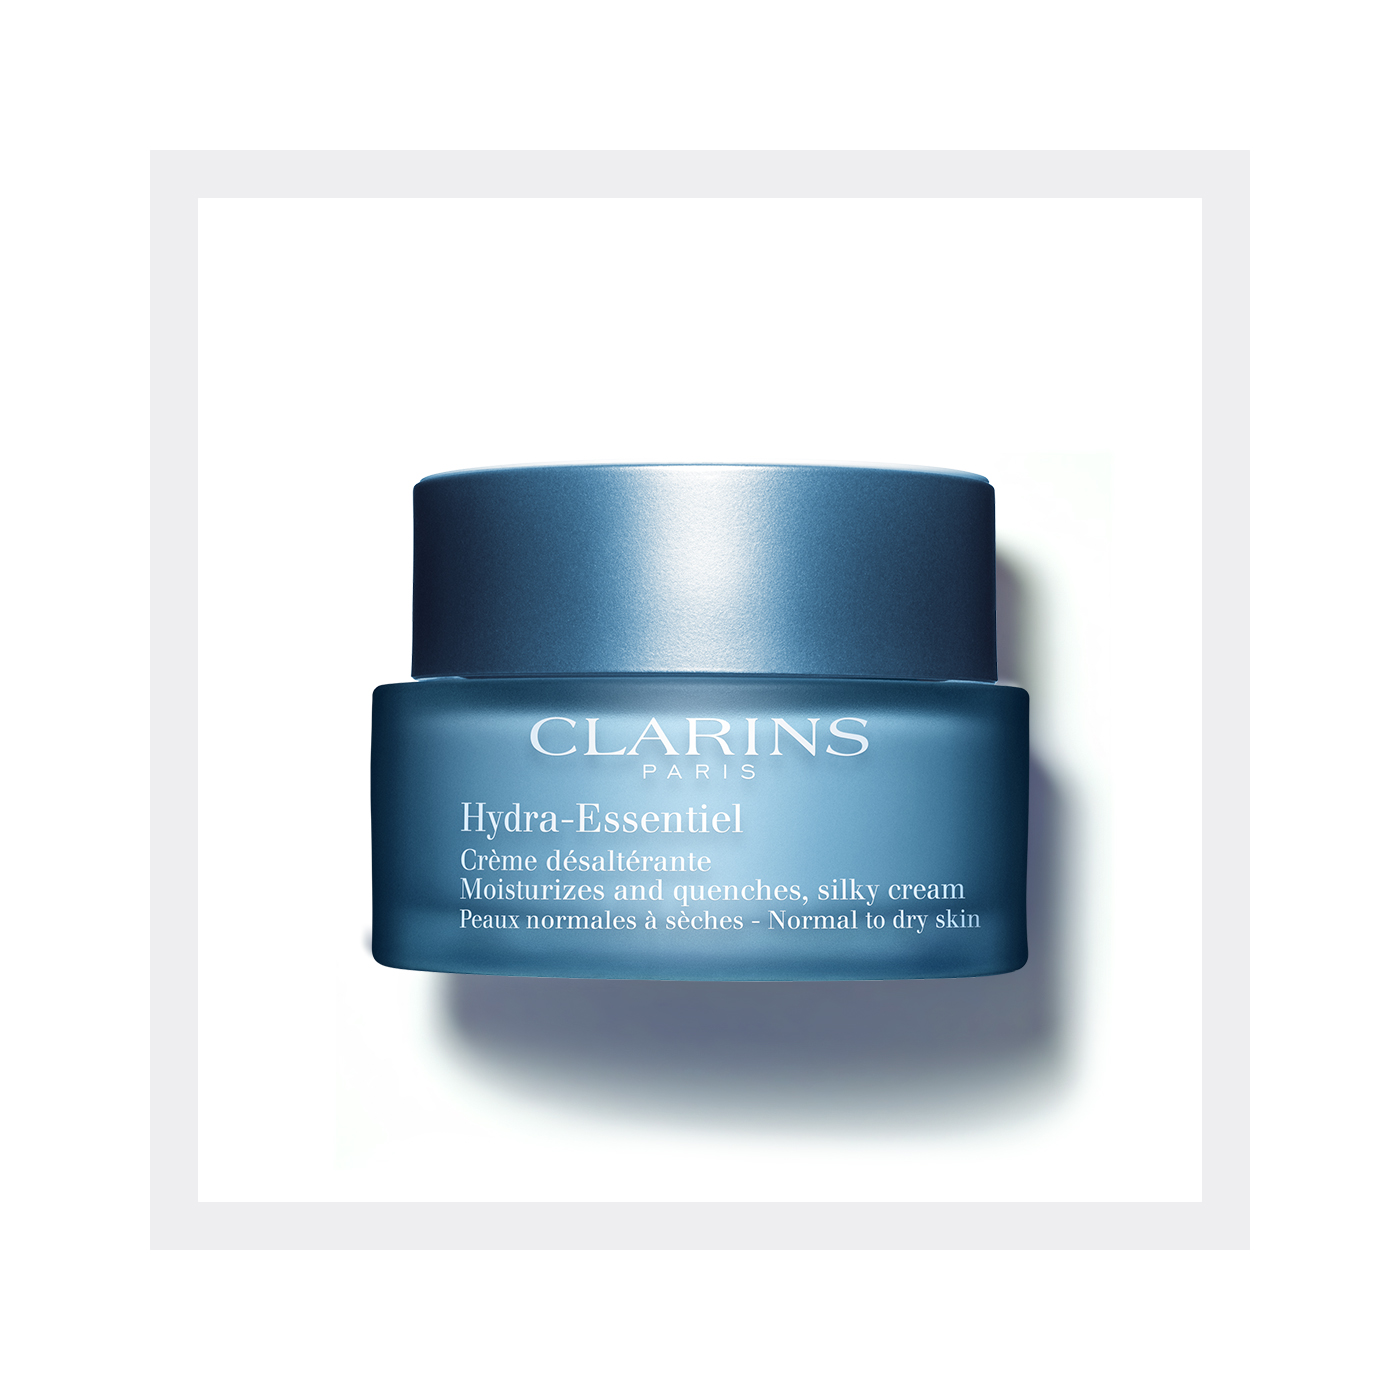 Toning Lotion With Camomile by Clarins #11